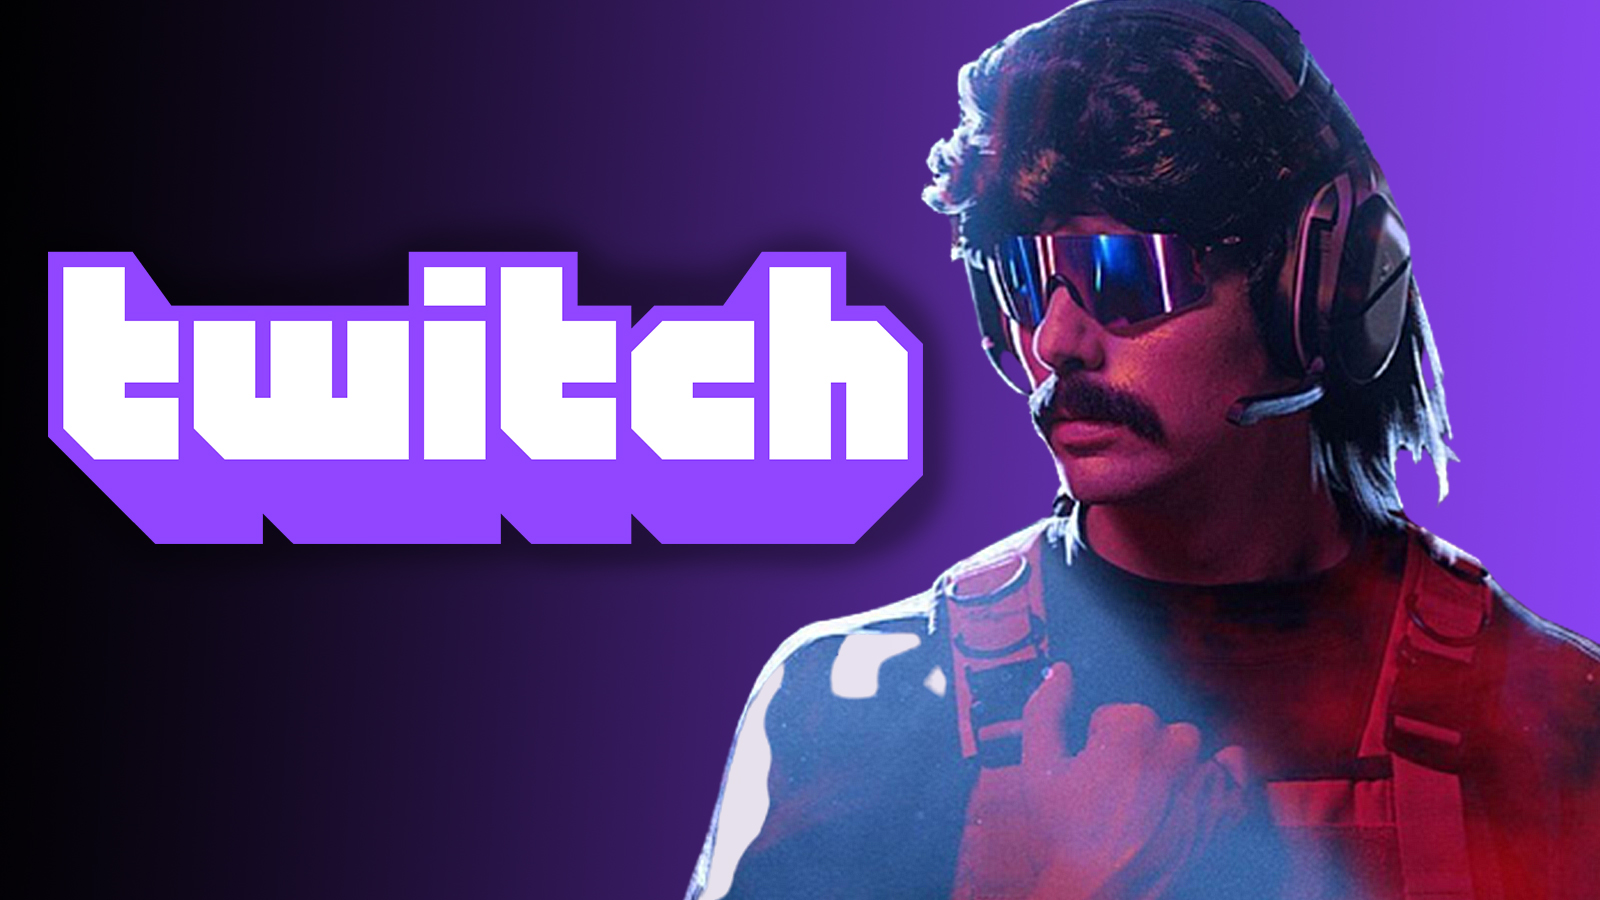 Twitch Brand Safety Score may reveal Dr Disrespect ban reason